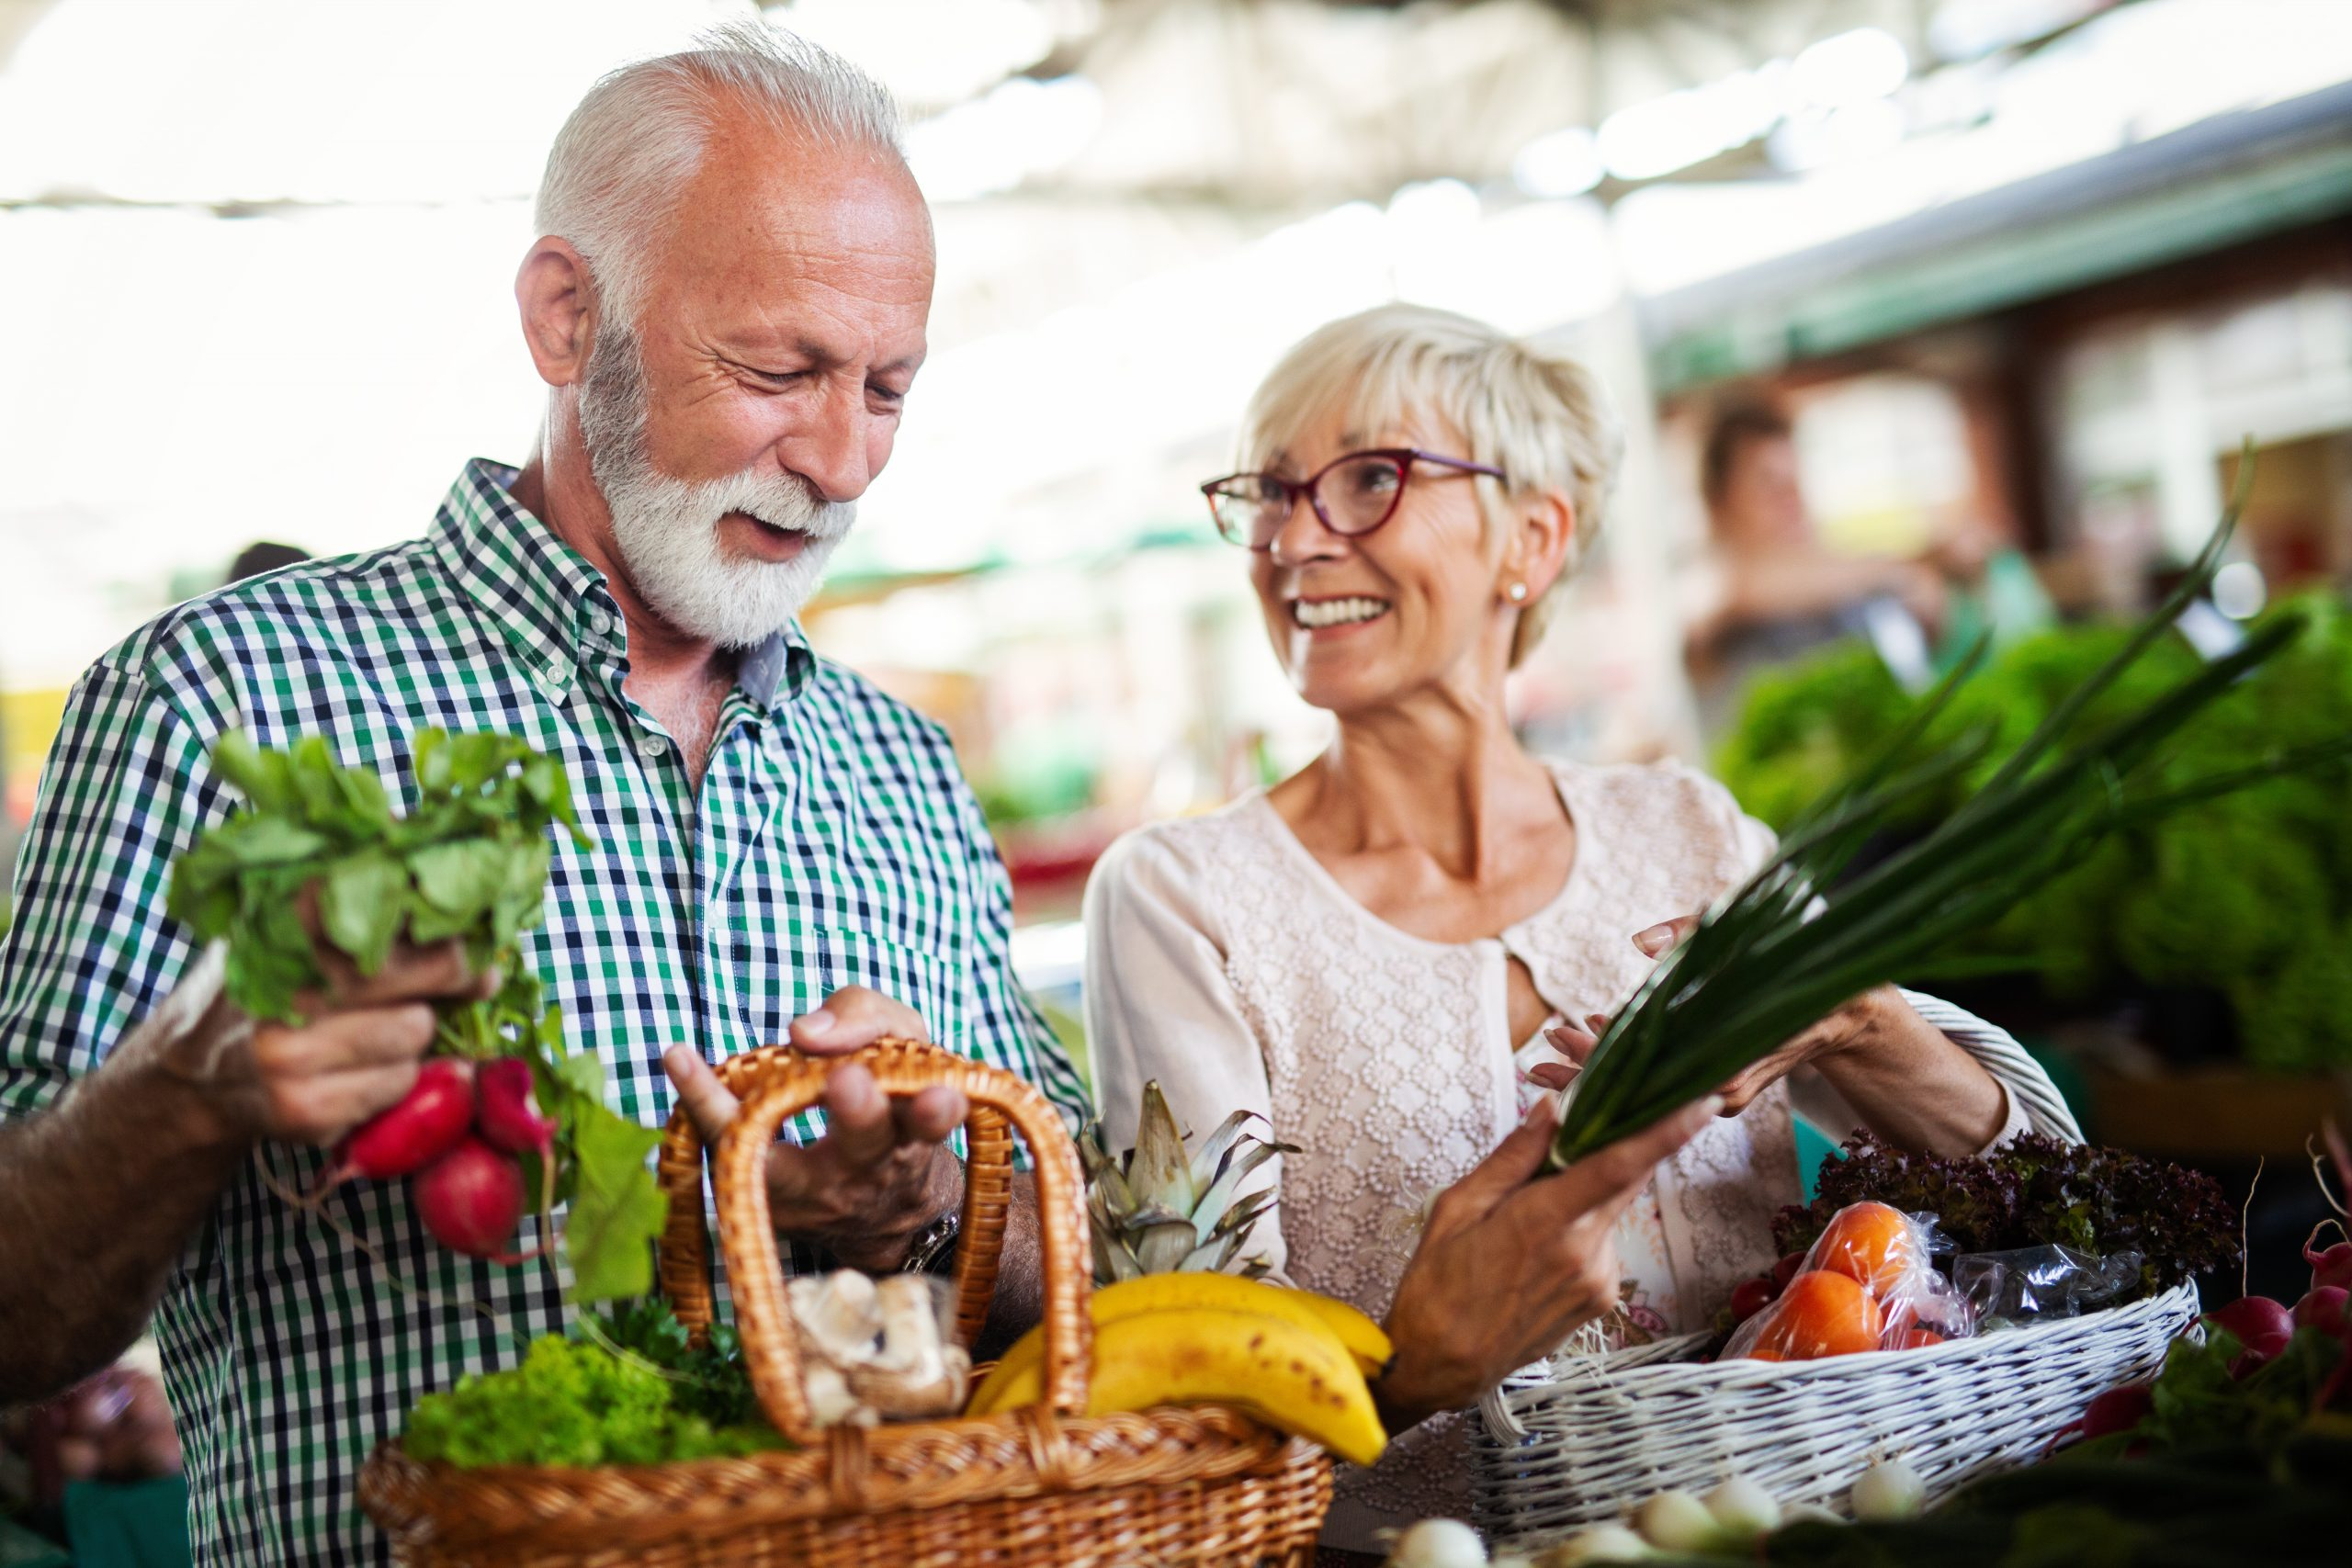 Can This Diet Protect Senior's Against Alzheimer's Disease?